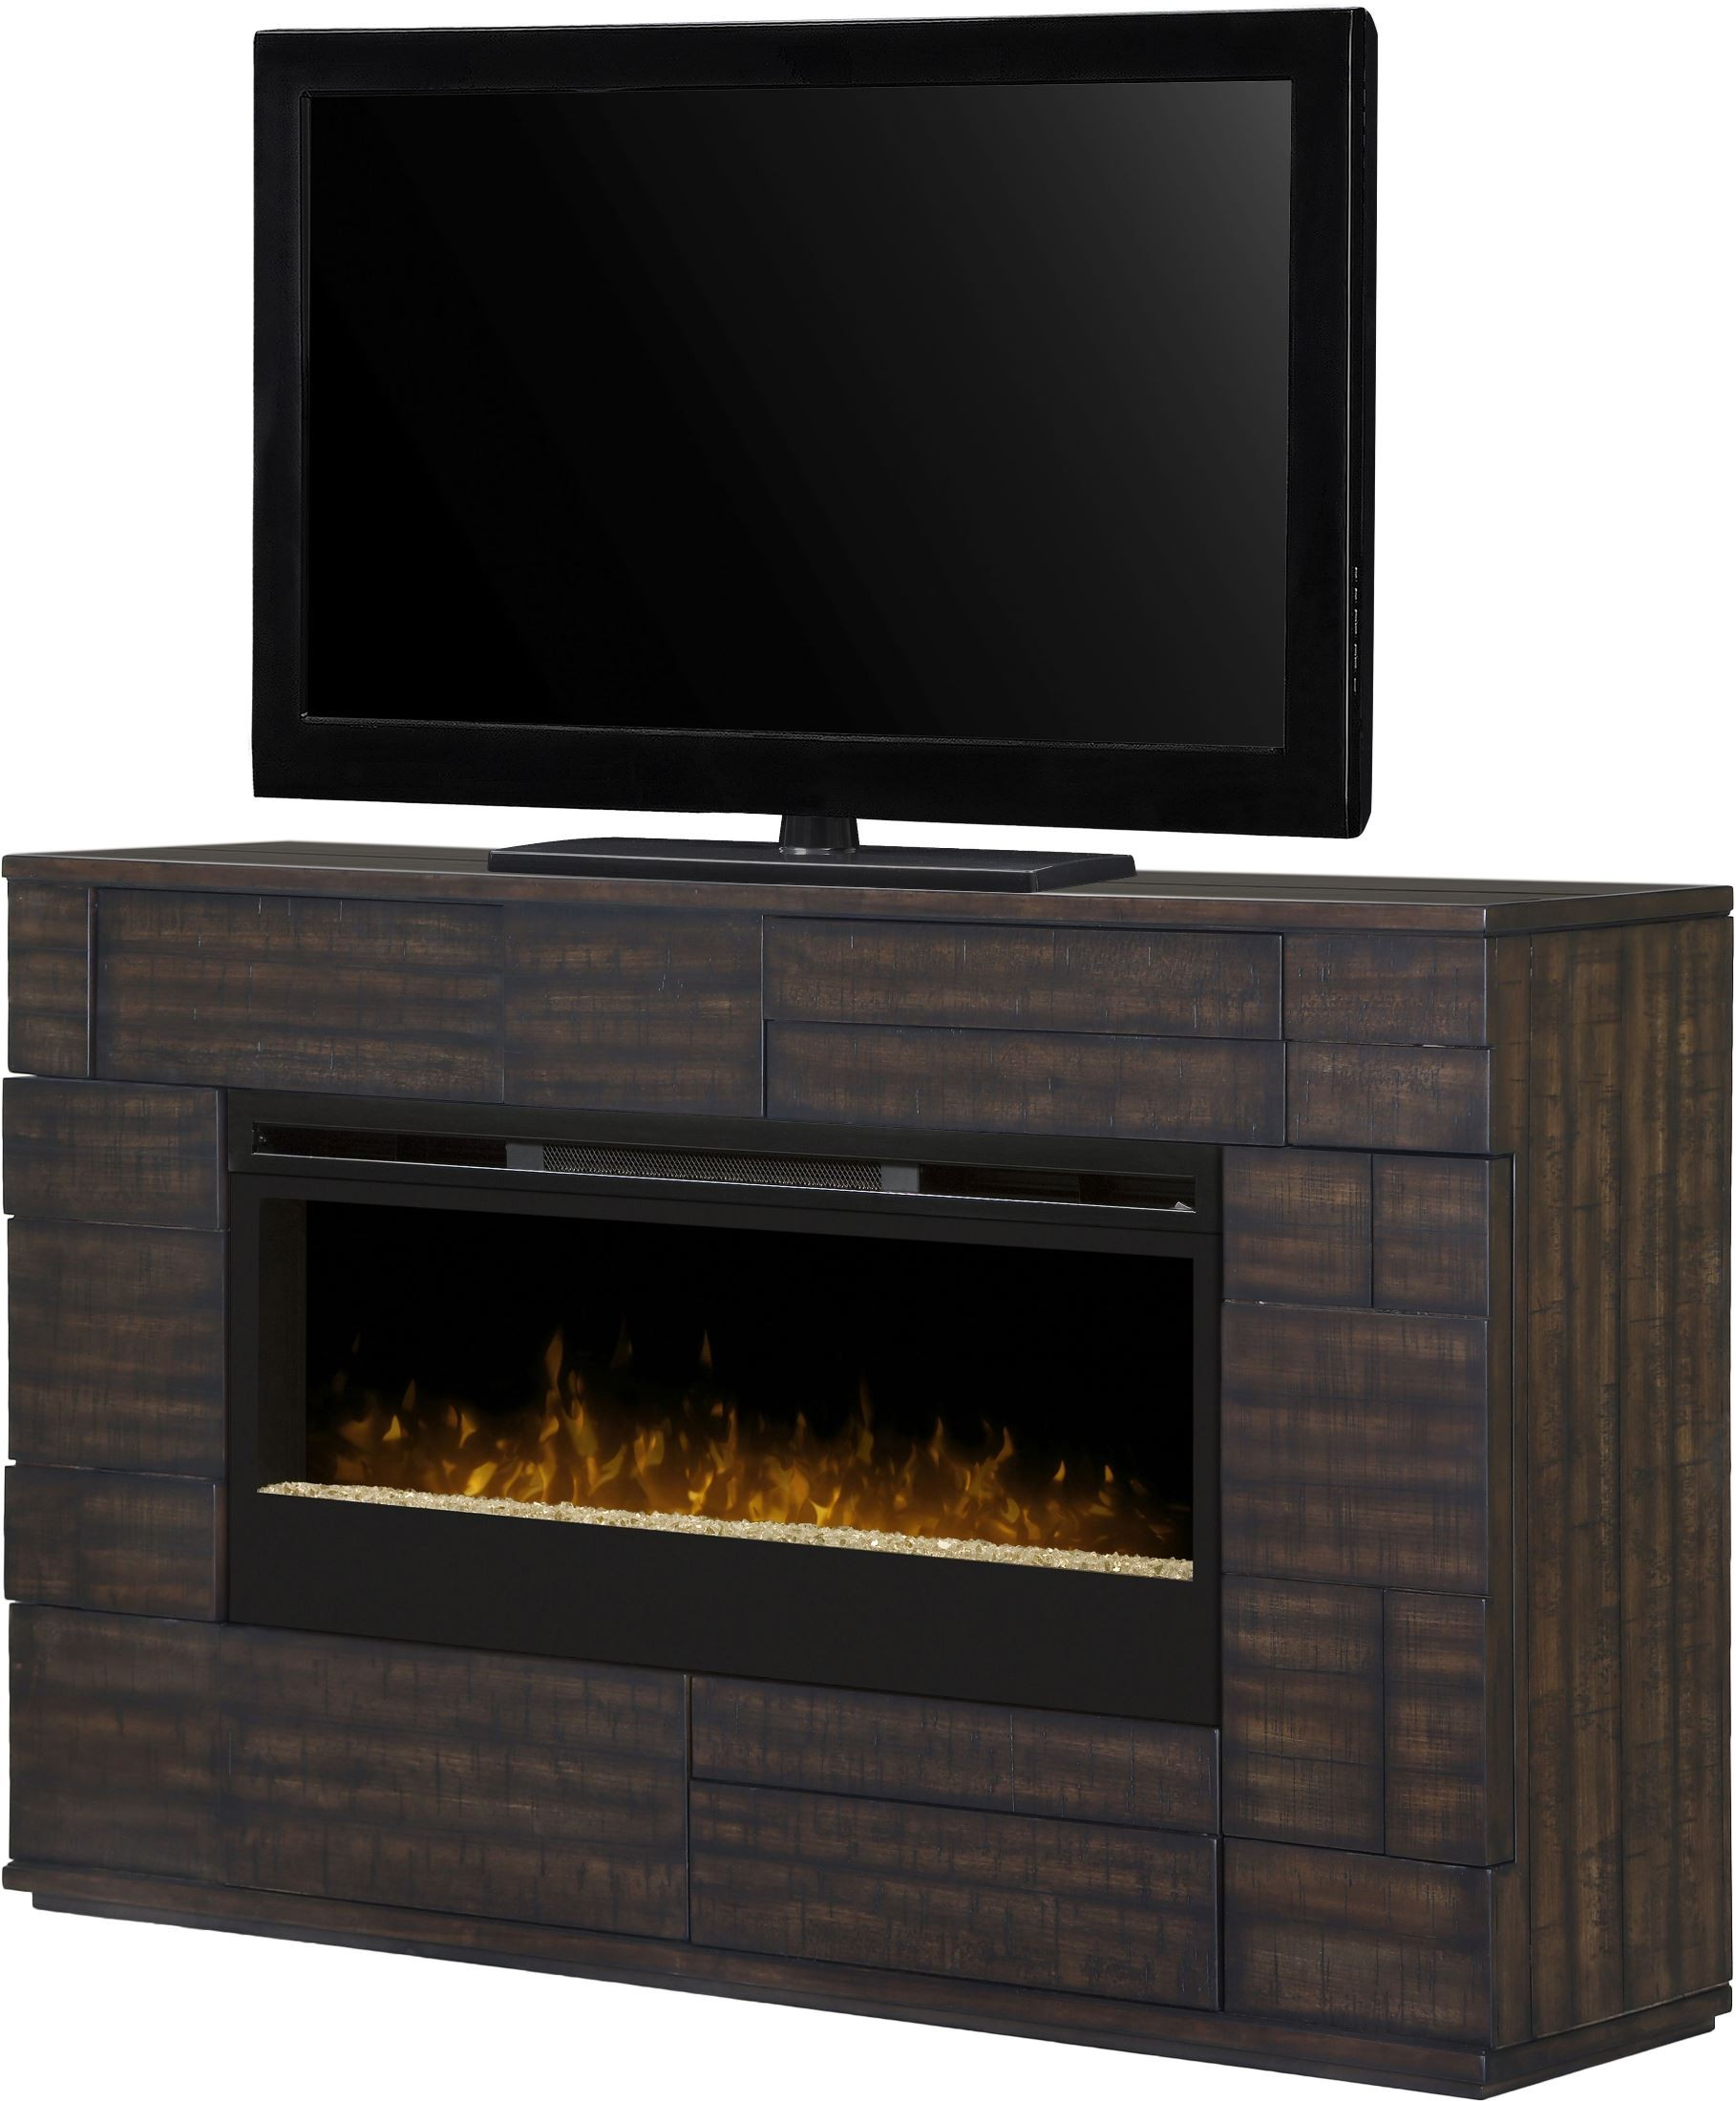 Markus boston electric mantel fireplace with acrylic ember - Going to bed with embers in fireplace ...